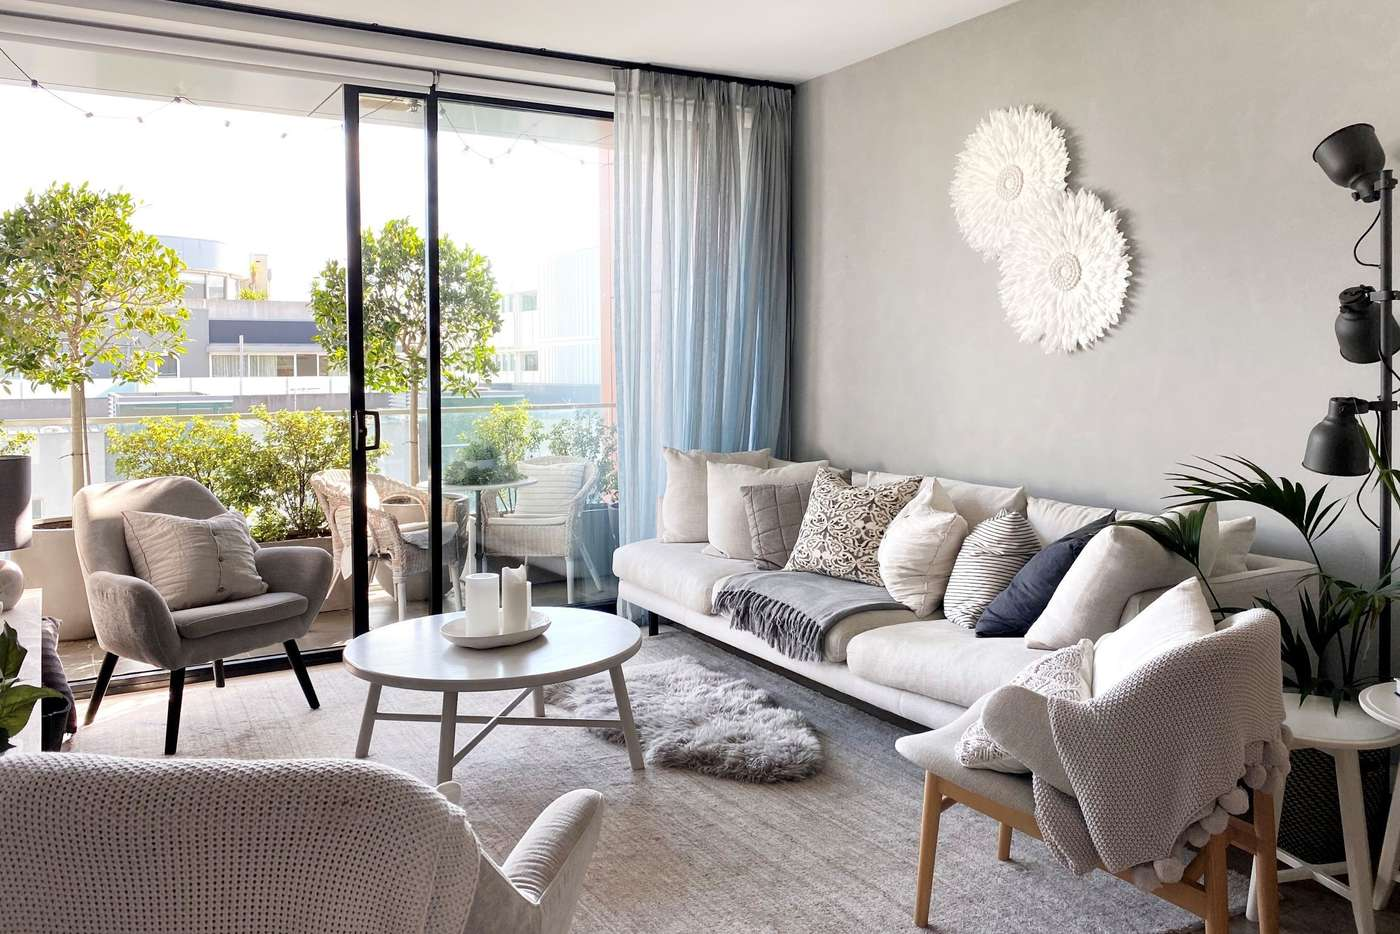 Sixth view of Homely apartment listing, 184 Bay Street, Brighton VIC 3186